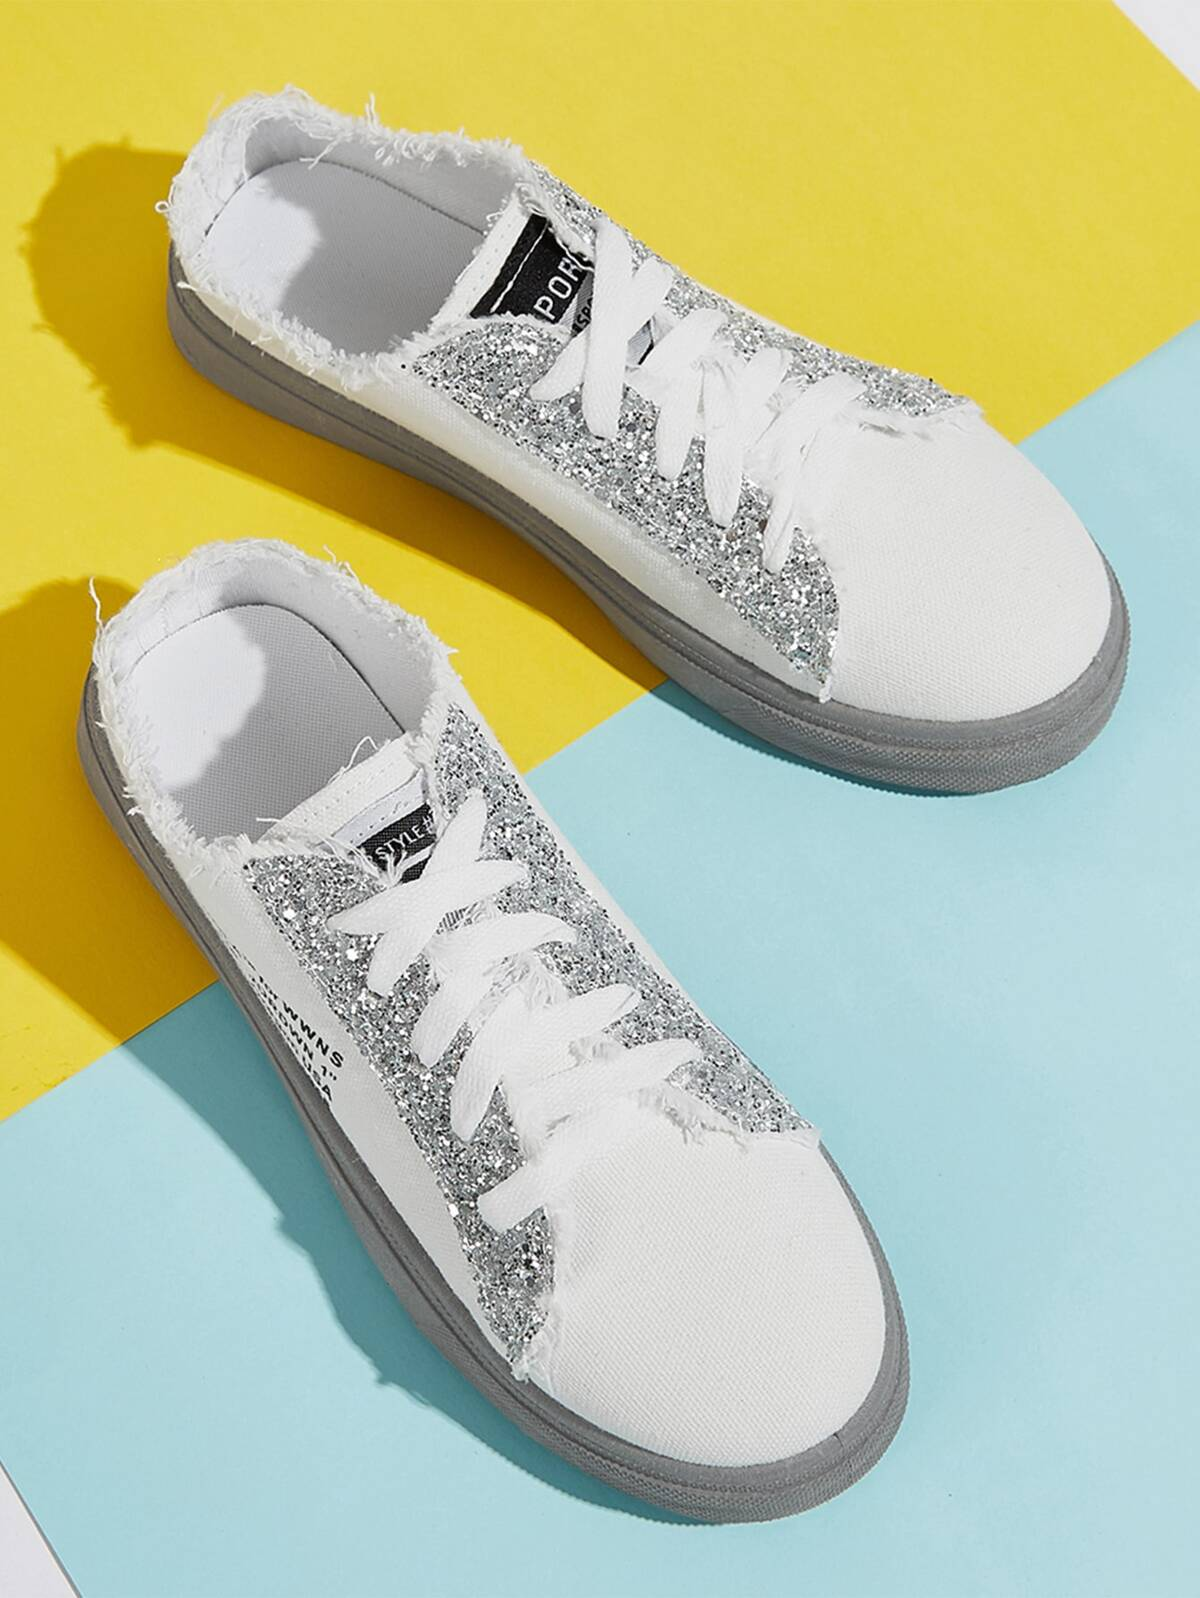 Sequin Raw Edge Canvas Shoes